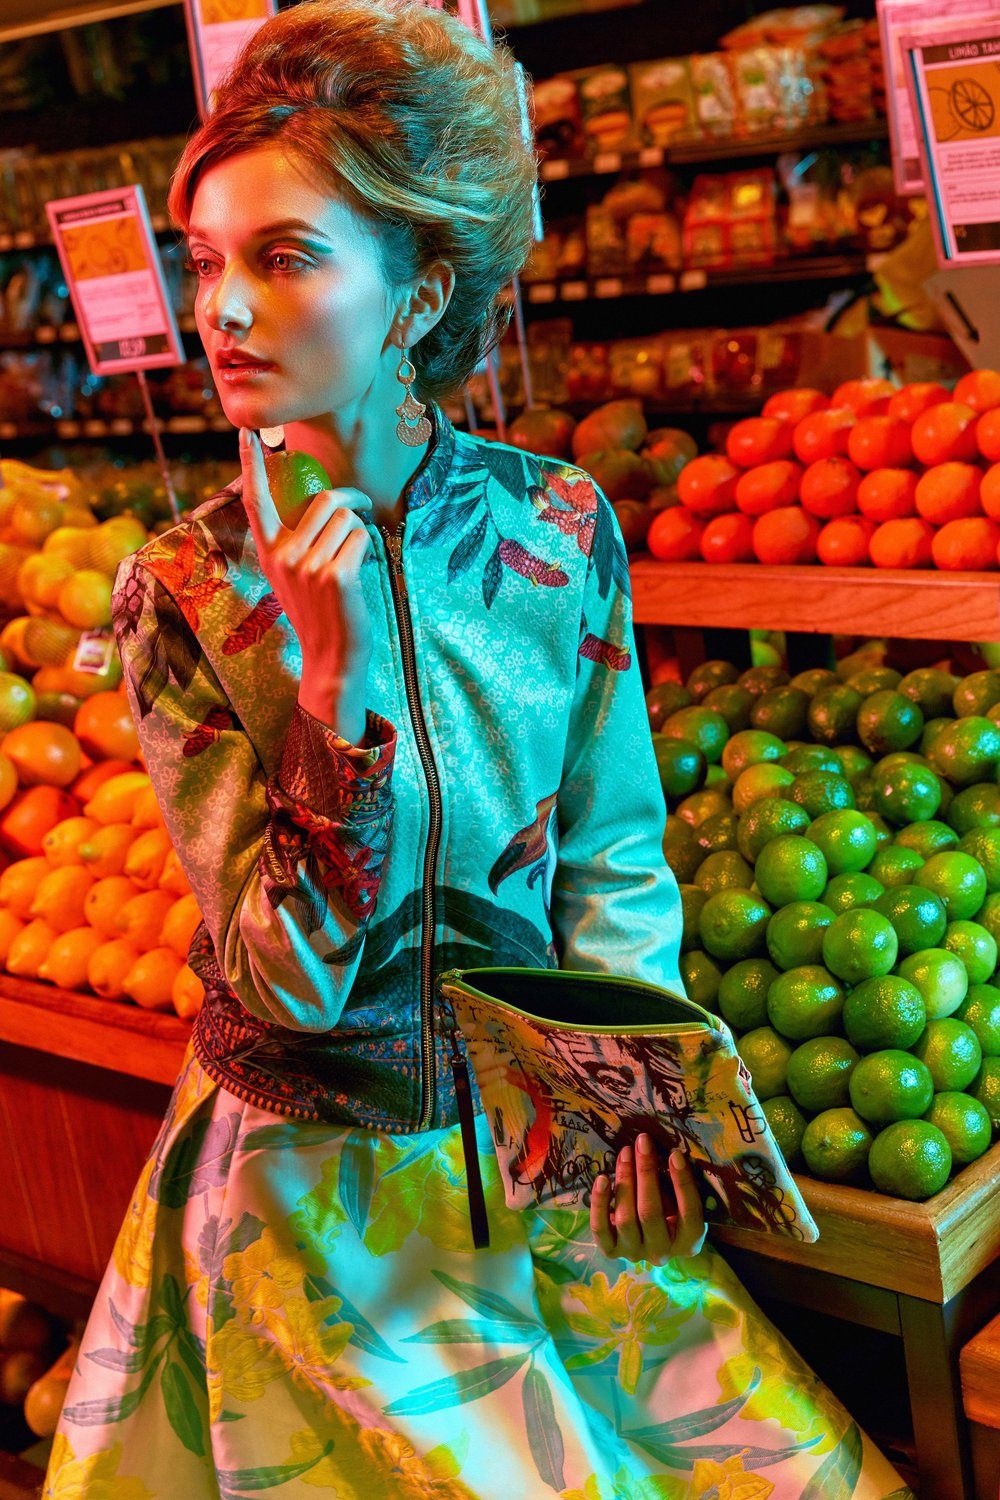 post 49 - Dione Occhipinti e styling - Marie Claire